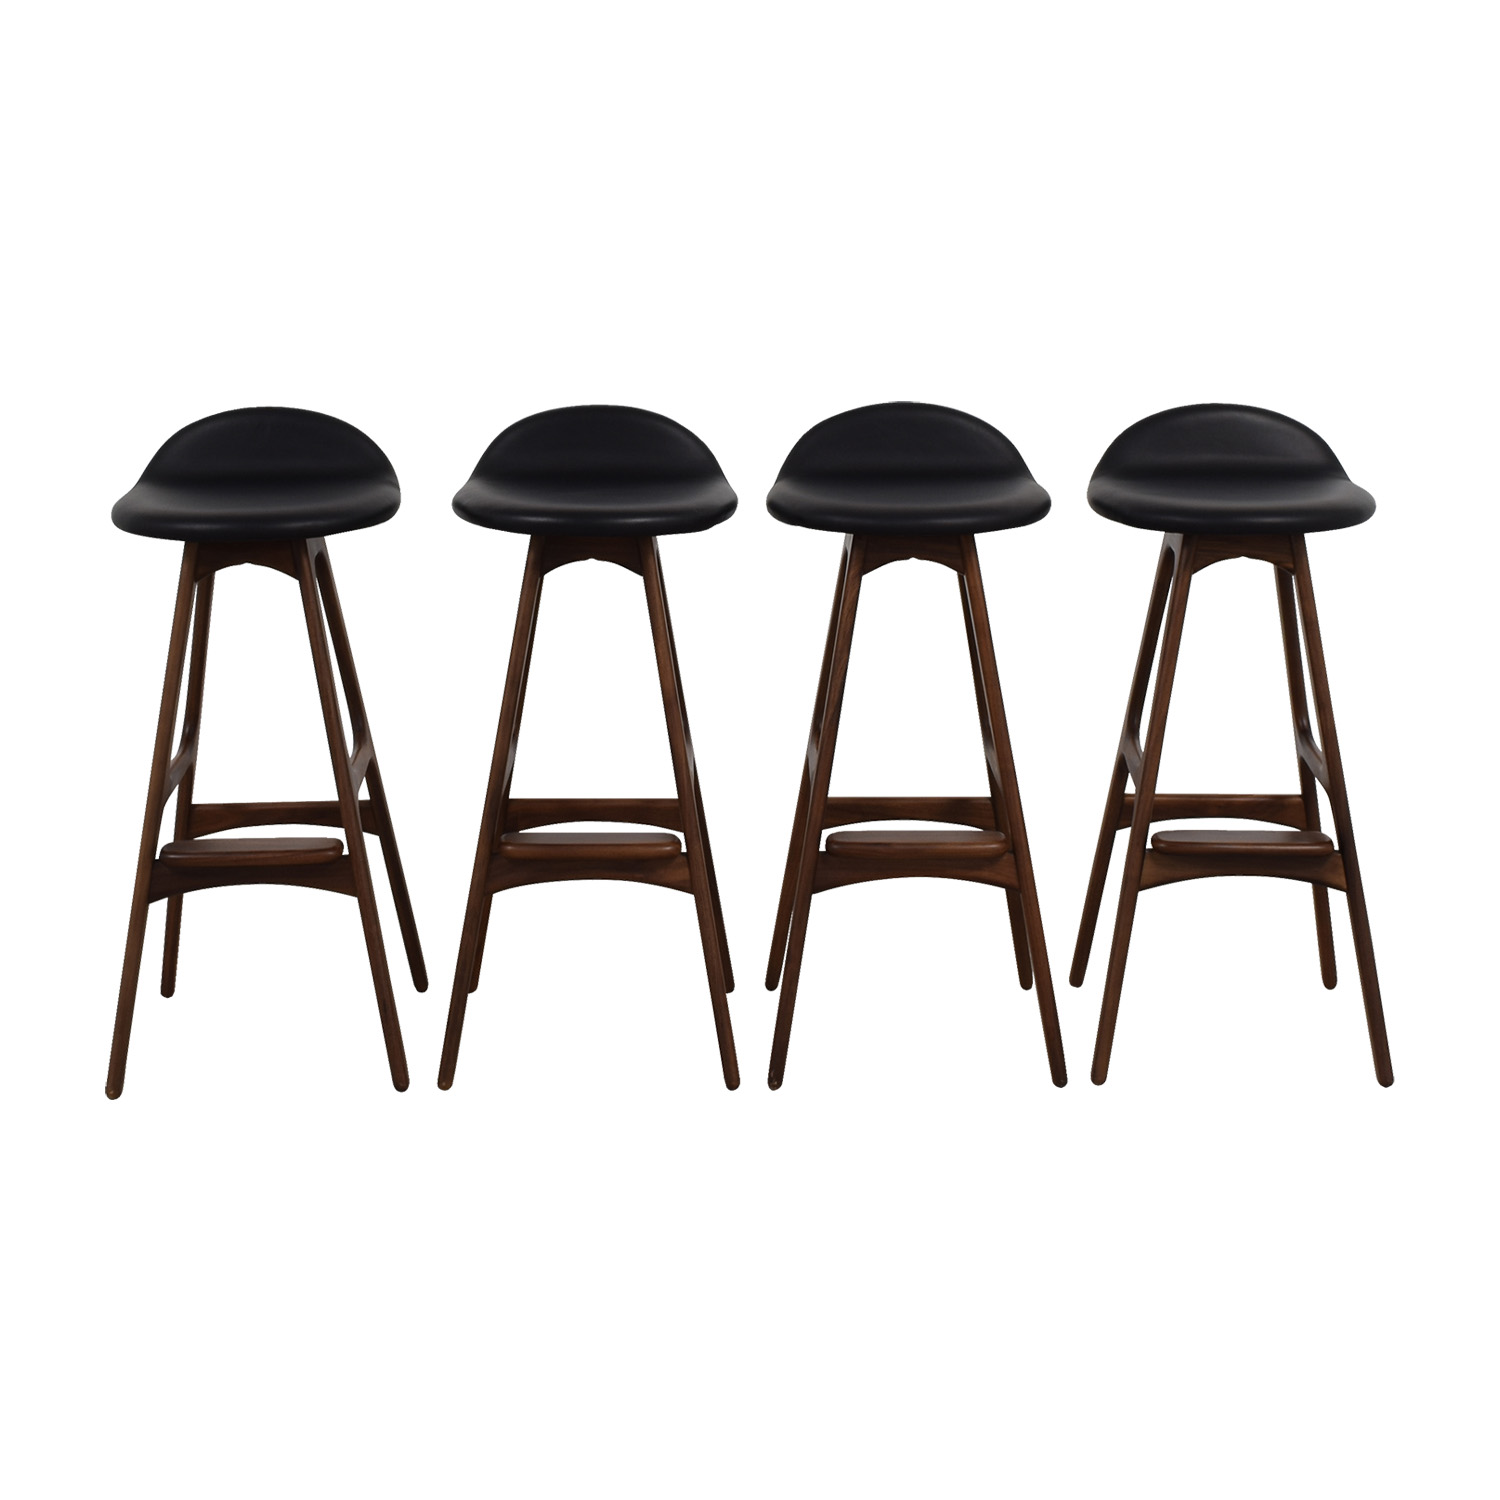 Erik Buch Erik Buch Walnut and Leather Bar Stools discount